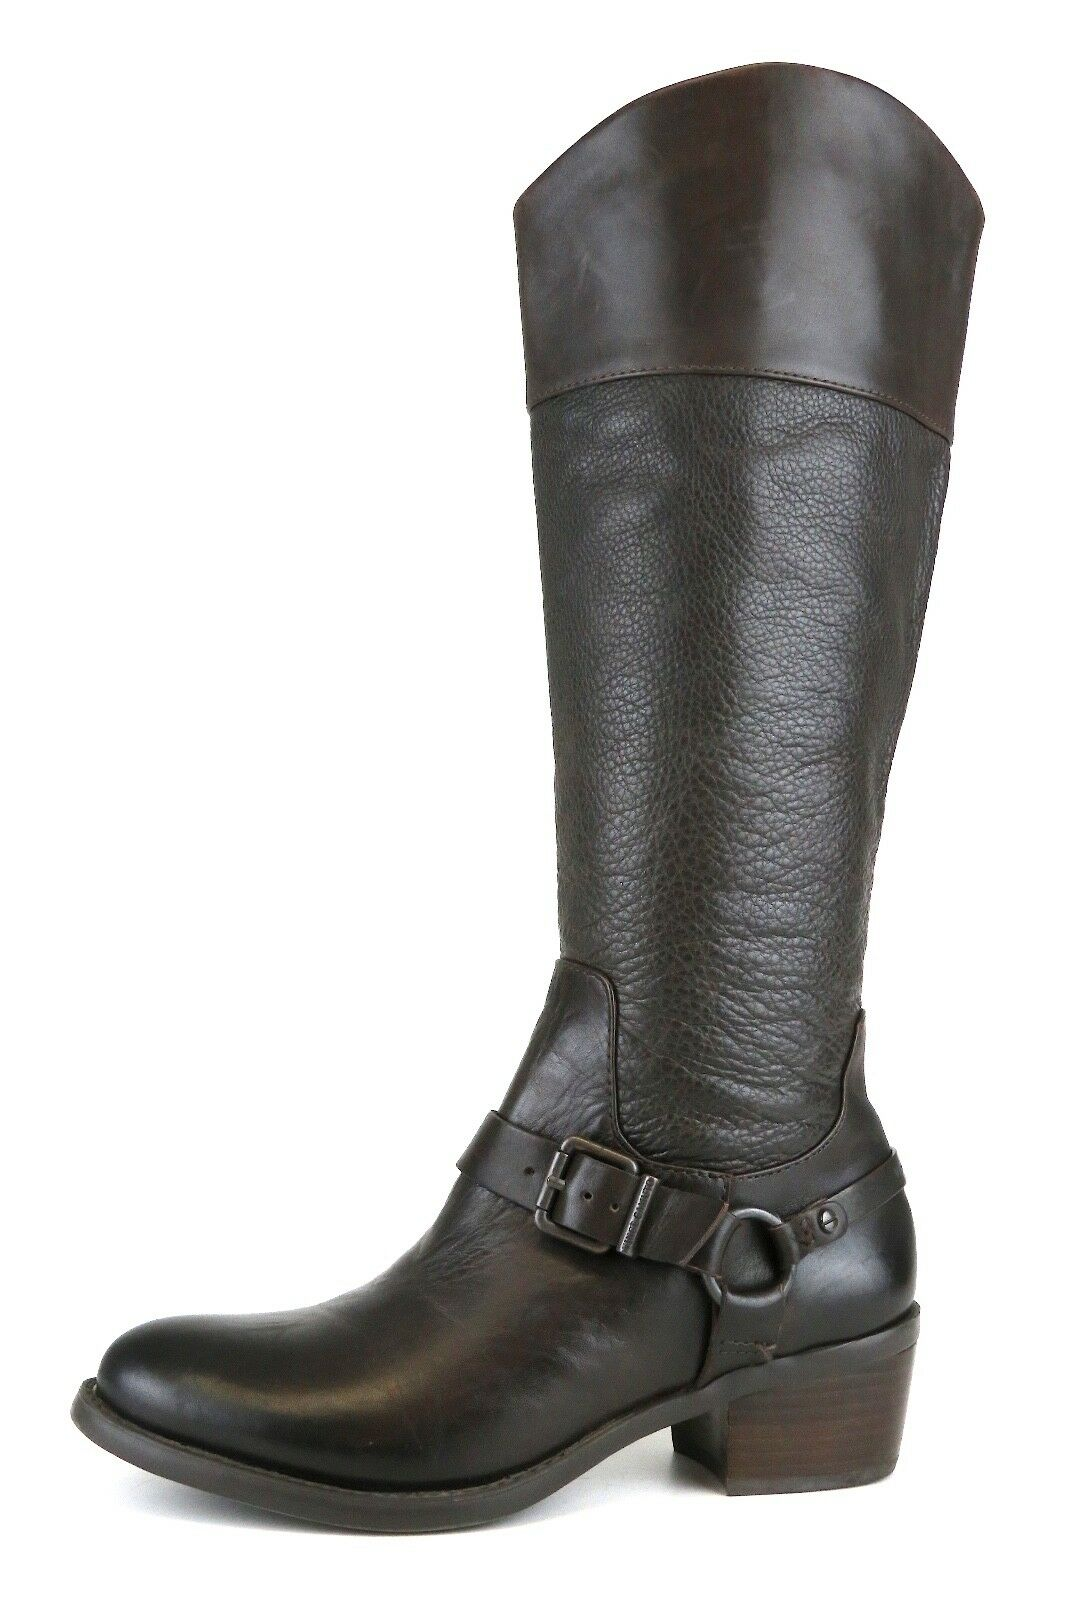 Vince Camuto Sz Brunah Tall Pelle Boot Brown Donna Sz Camuto 6.5 M 5440 * f60066